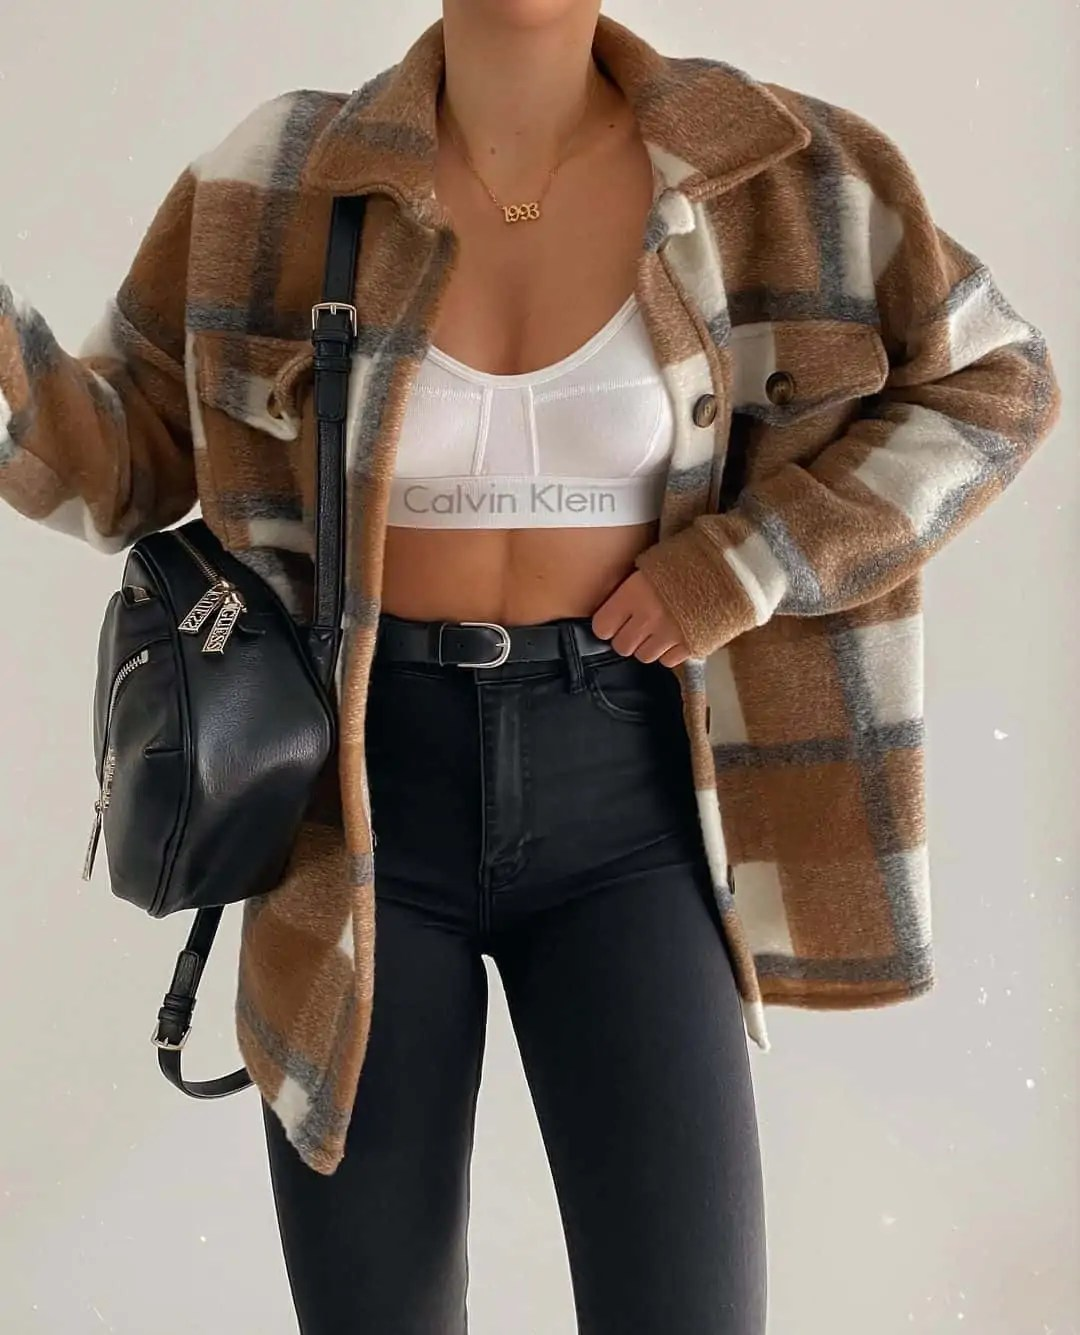 100+ Outfits to Inspire your next shopping haul 185